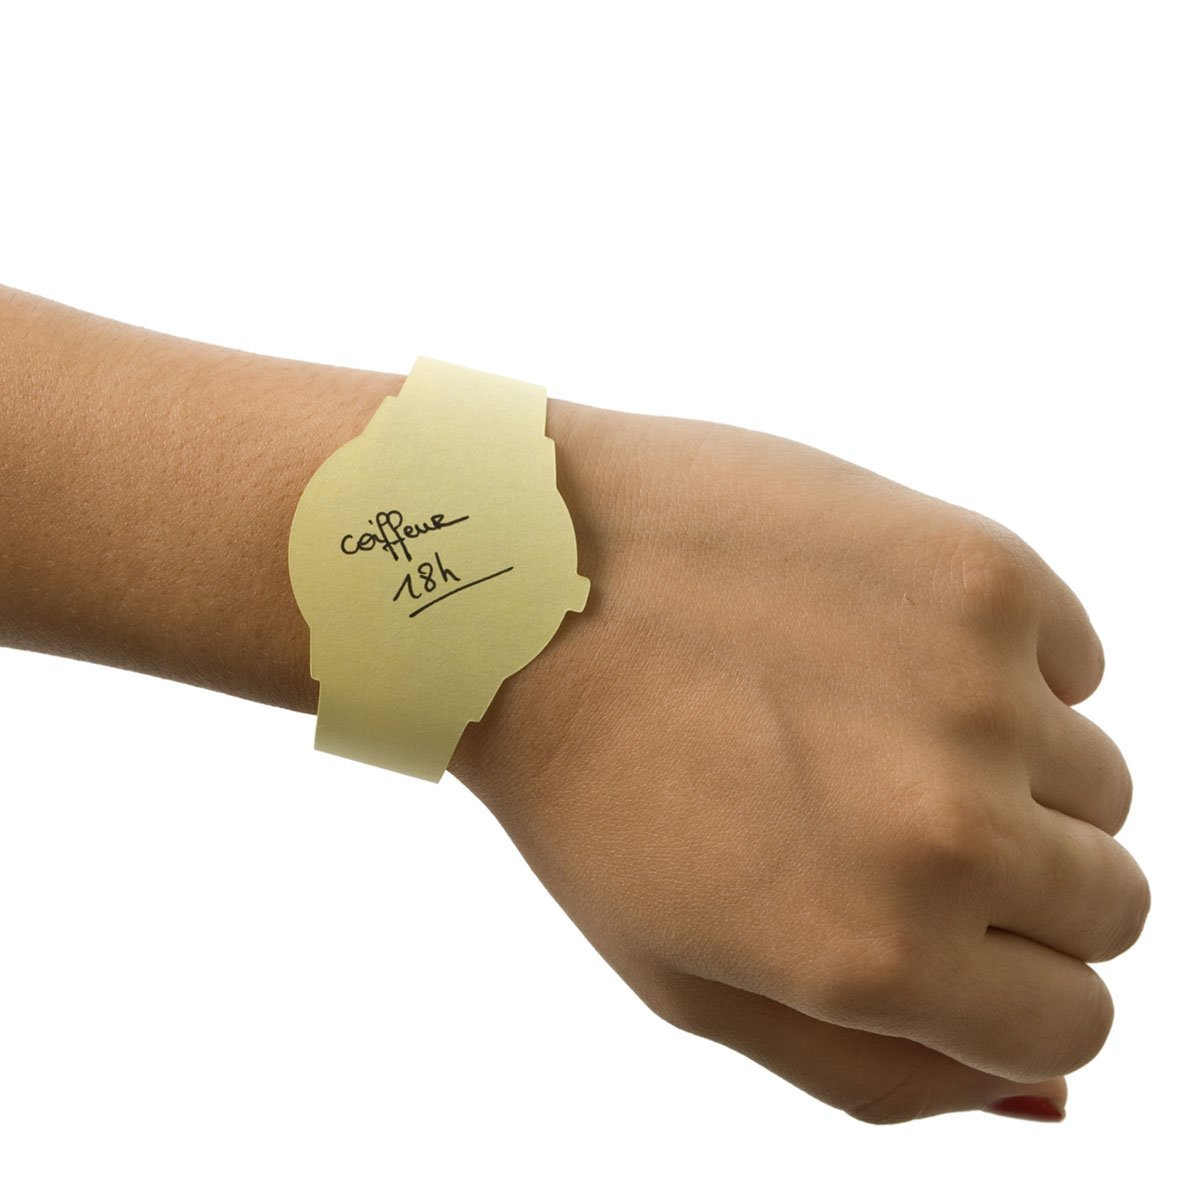 Post-it Watch : La montre pour prendre des notes à votre poignet